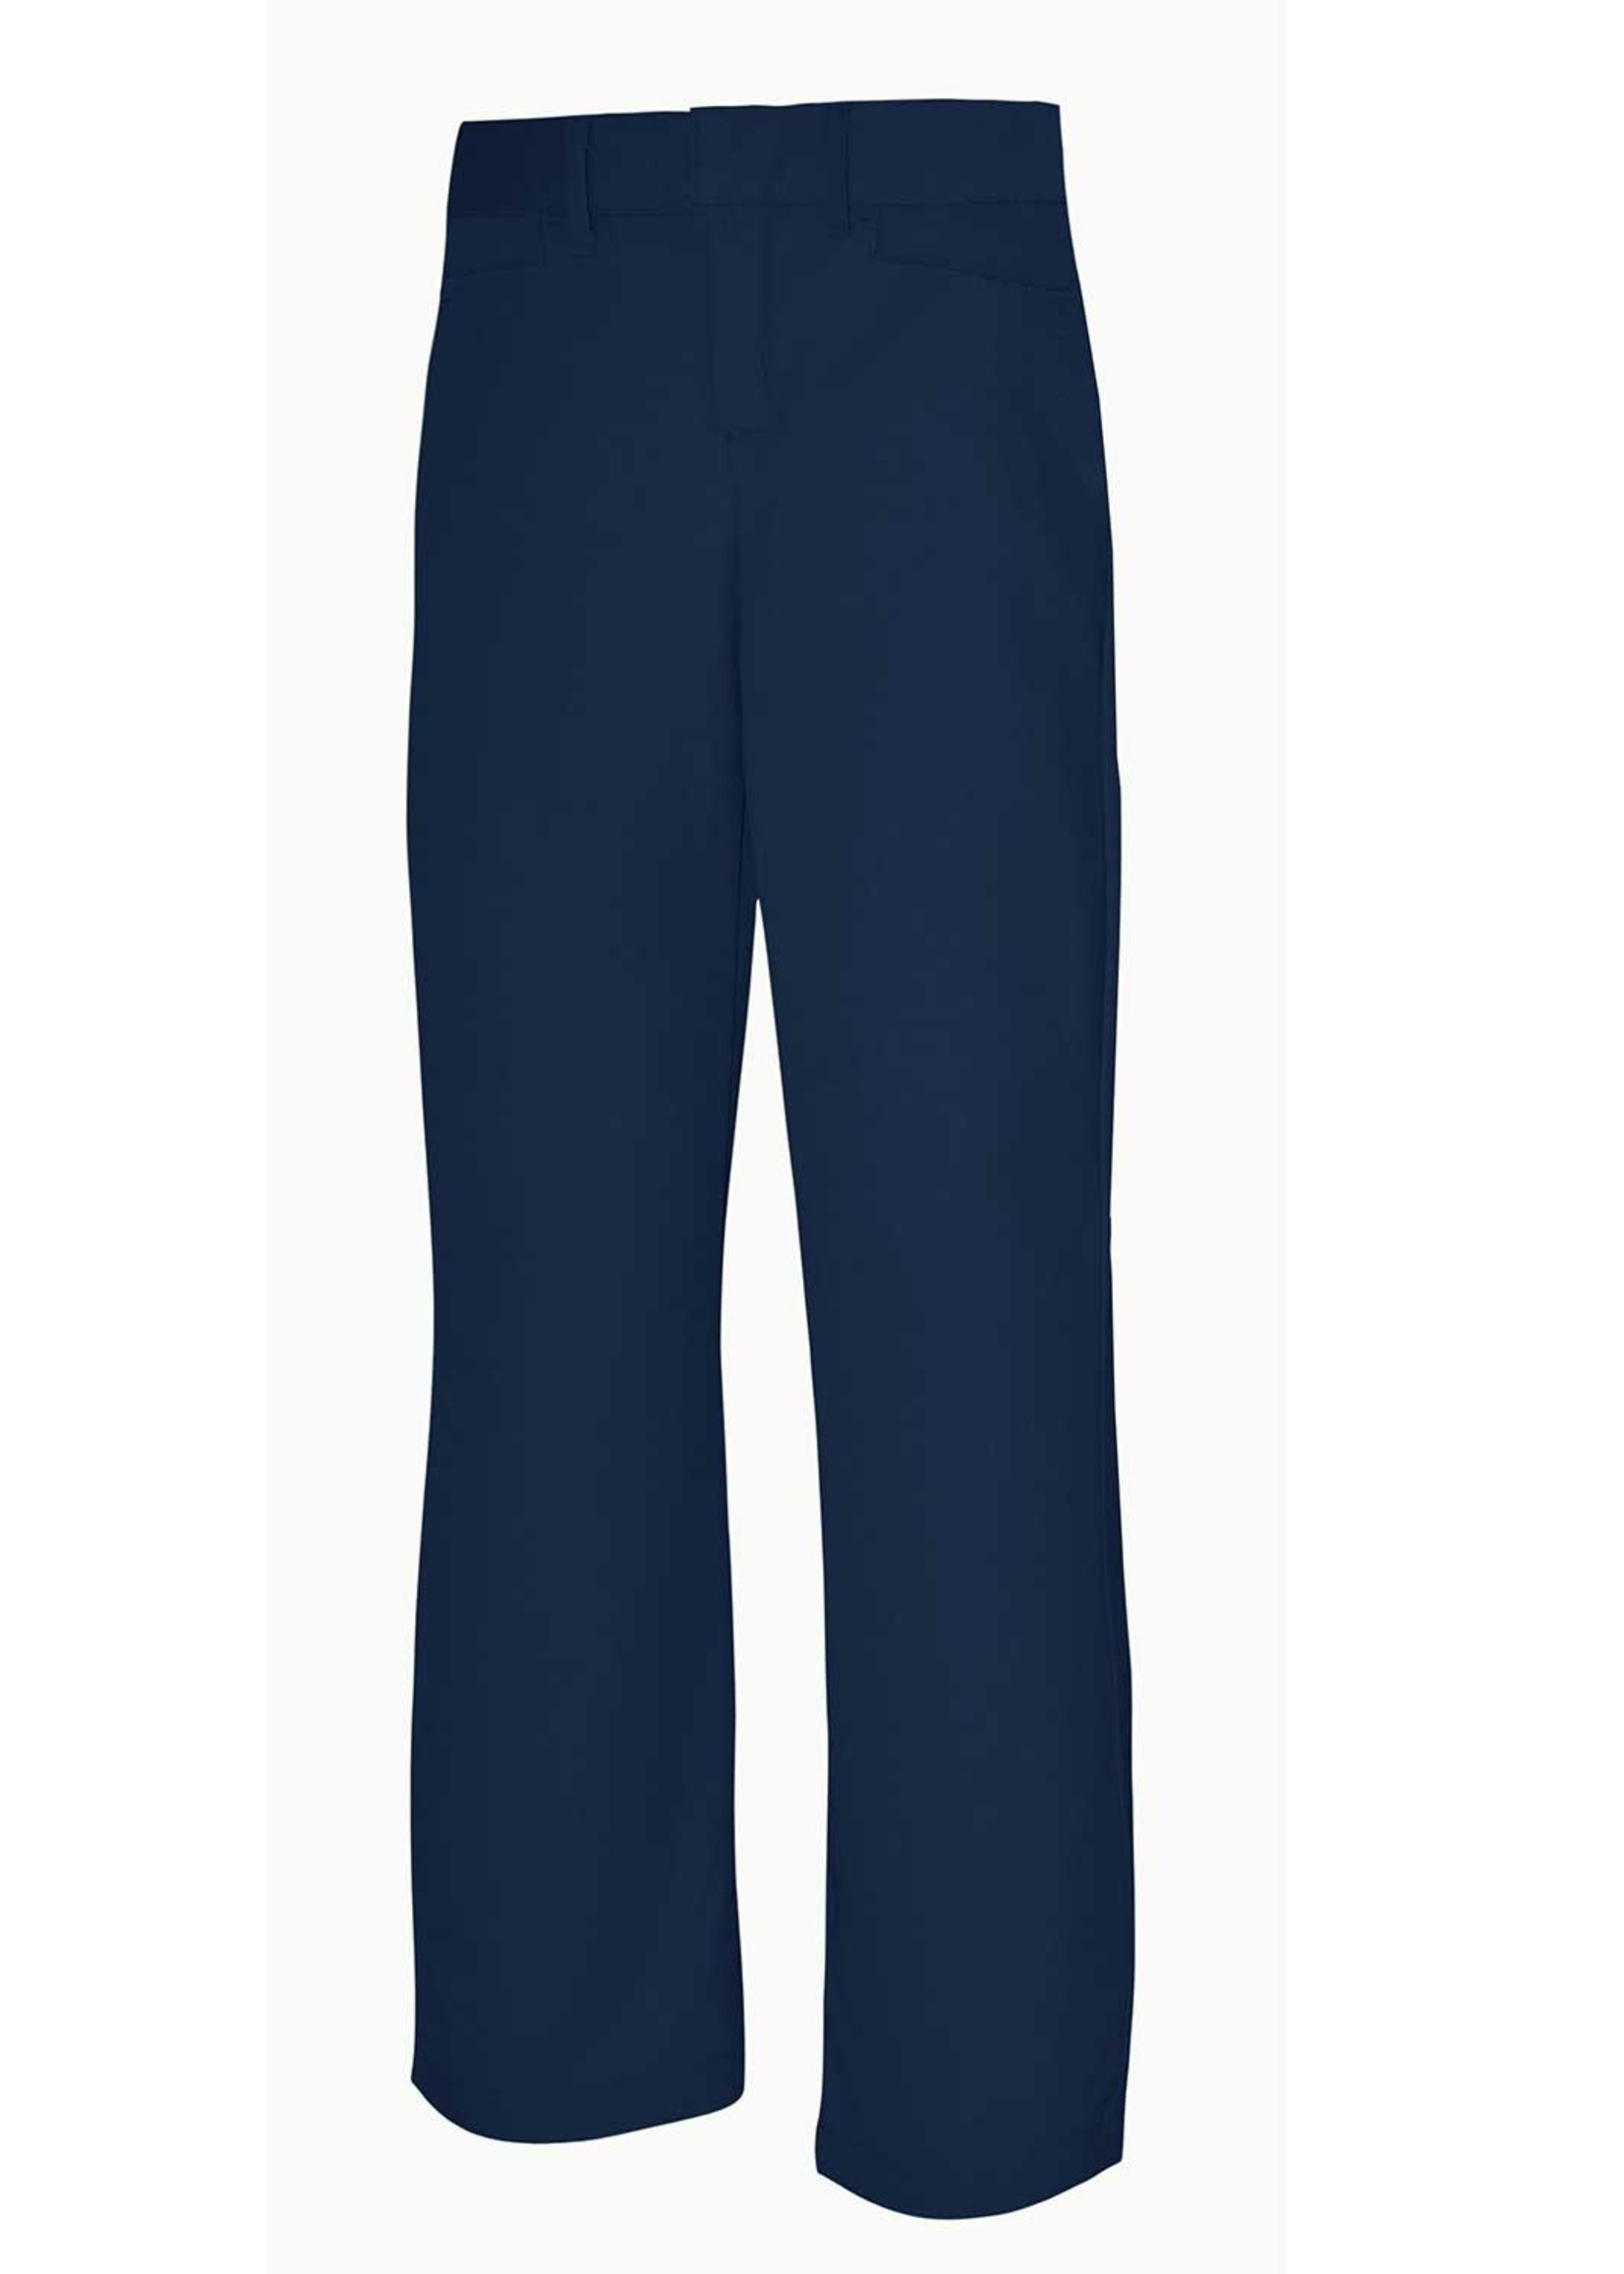 Girls Mid Rise Flat Front Pant KN with logo